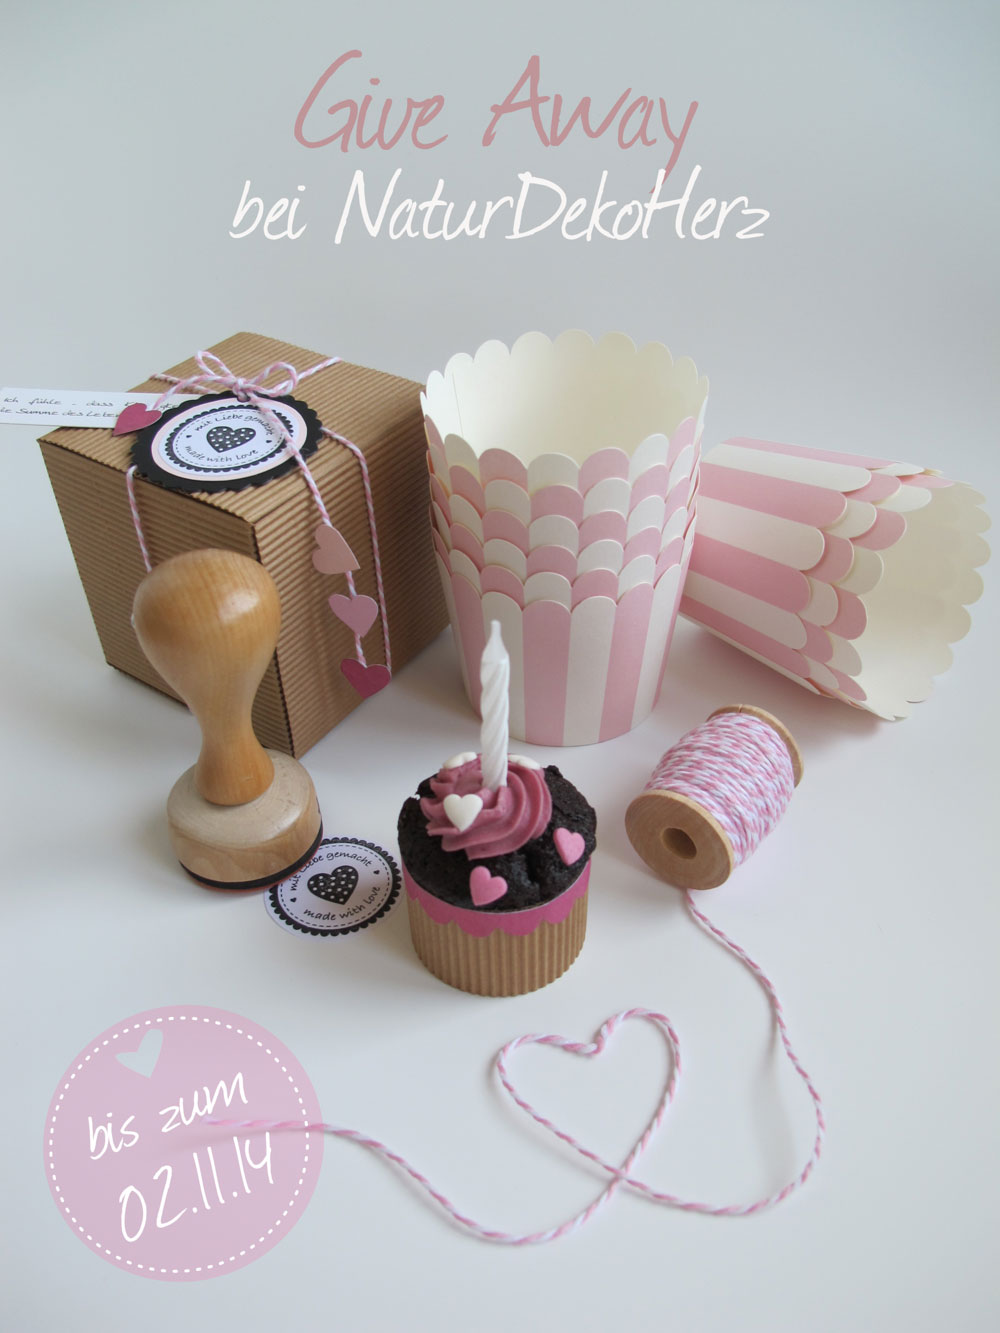 Give Away bei NaturDekoHerz